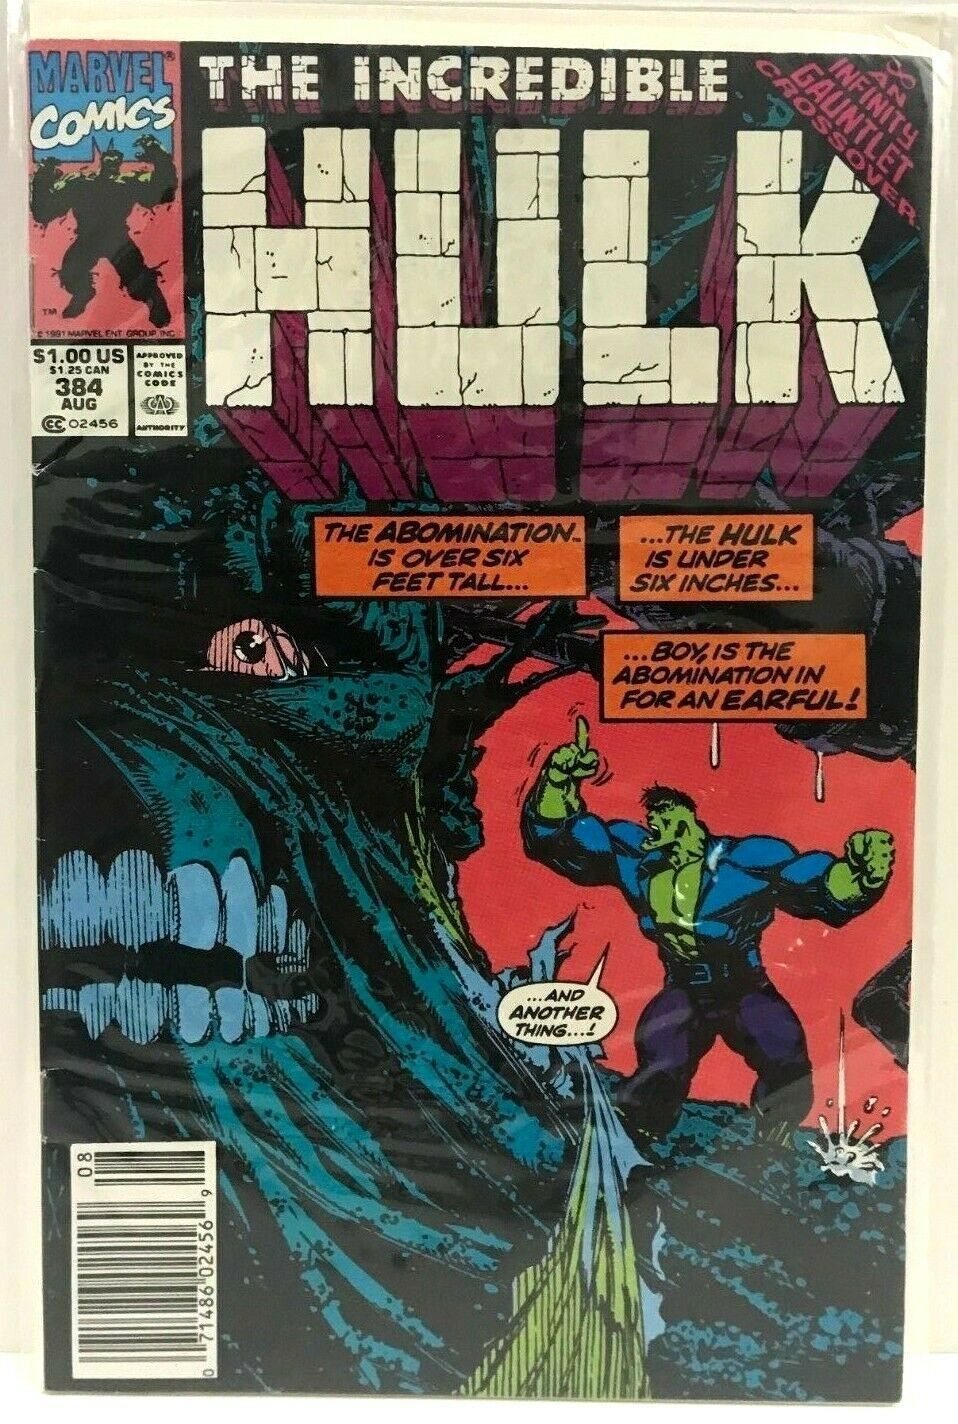 The Incredible Hulk 384 Aug 1991 Marvel Comics Comes With Plastic Cardboard Back